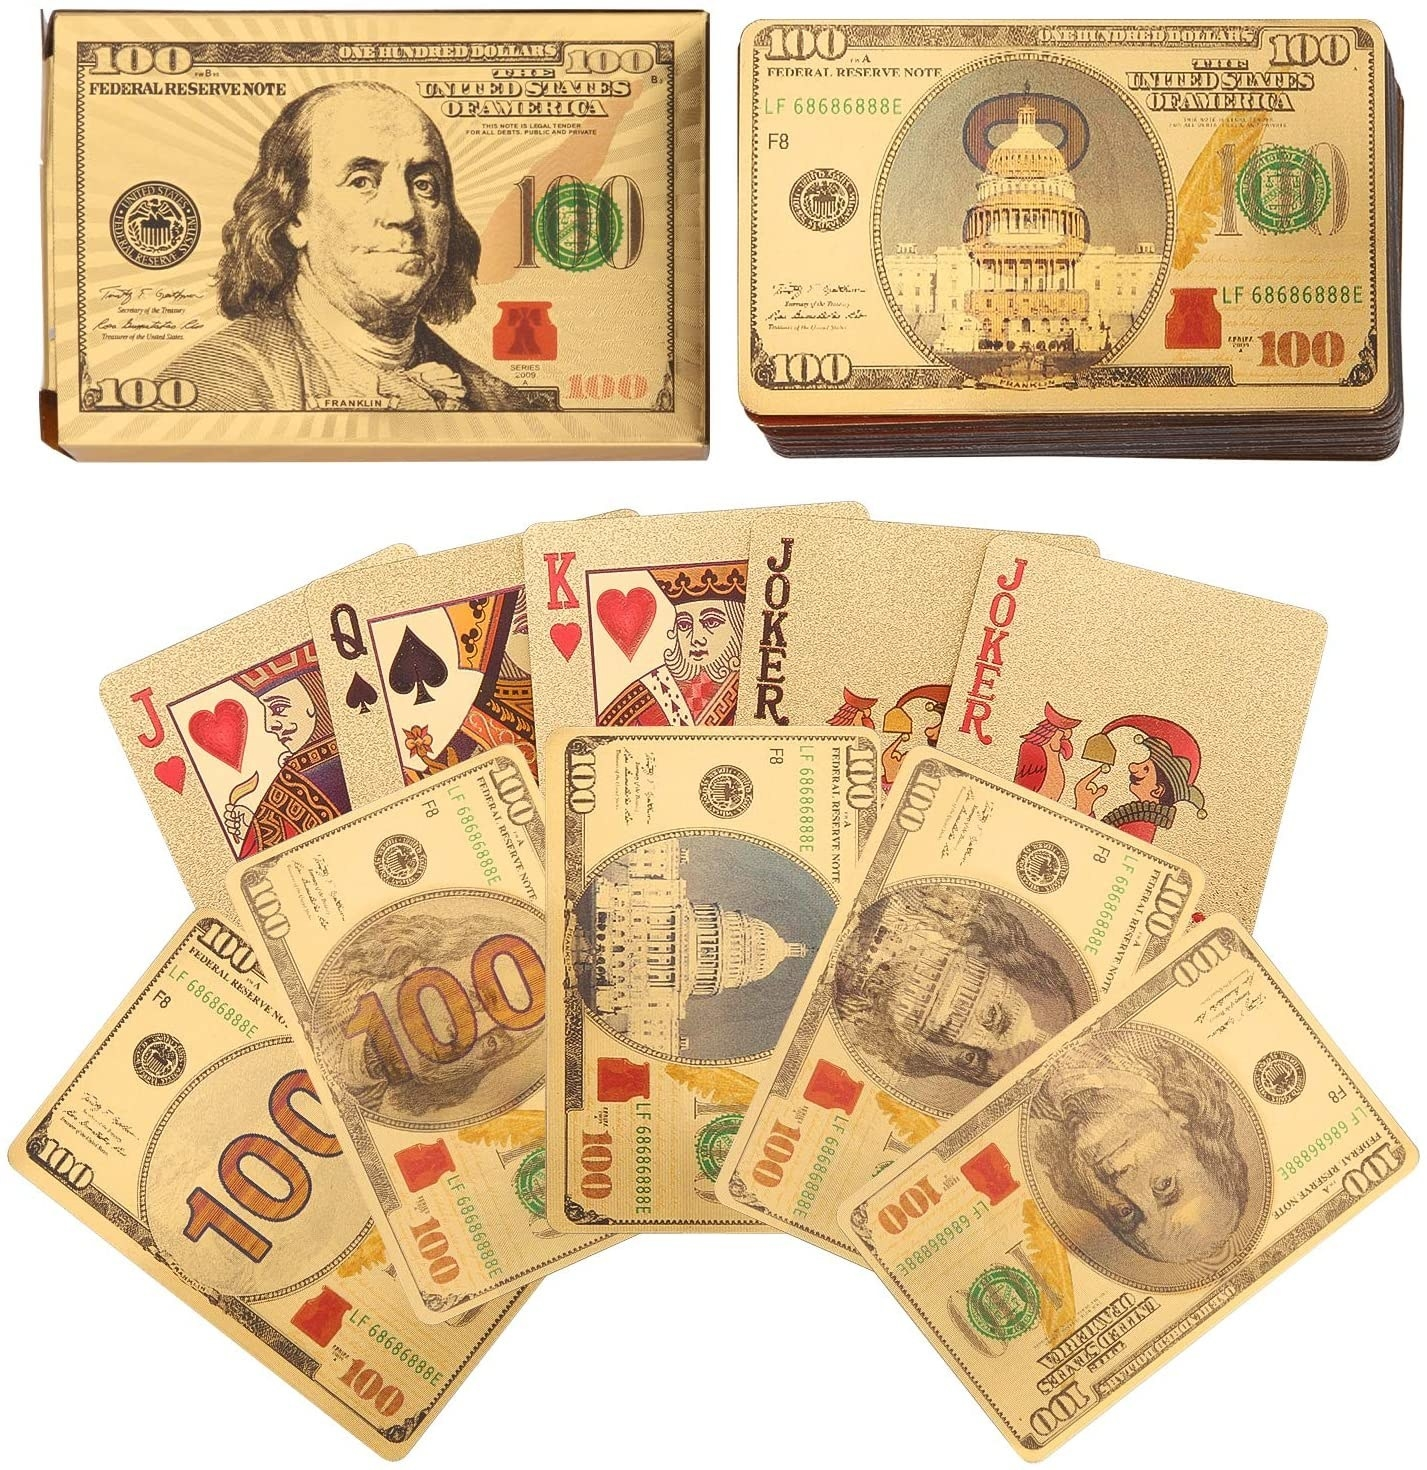 the gold cards with backs that look like hundred dollar bills